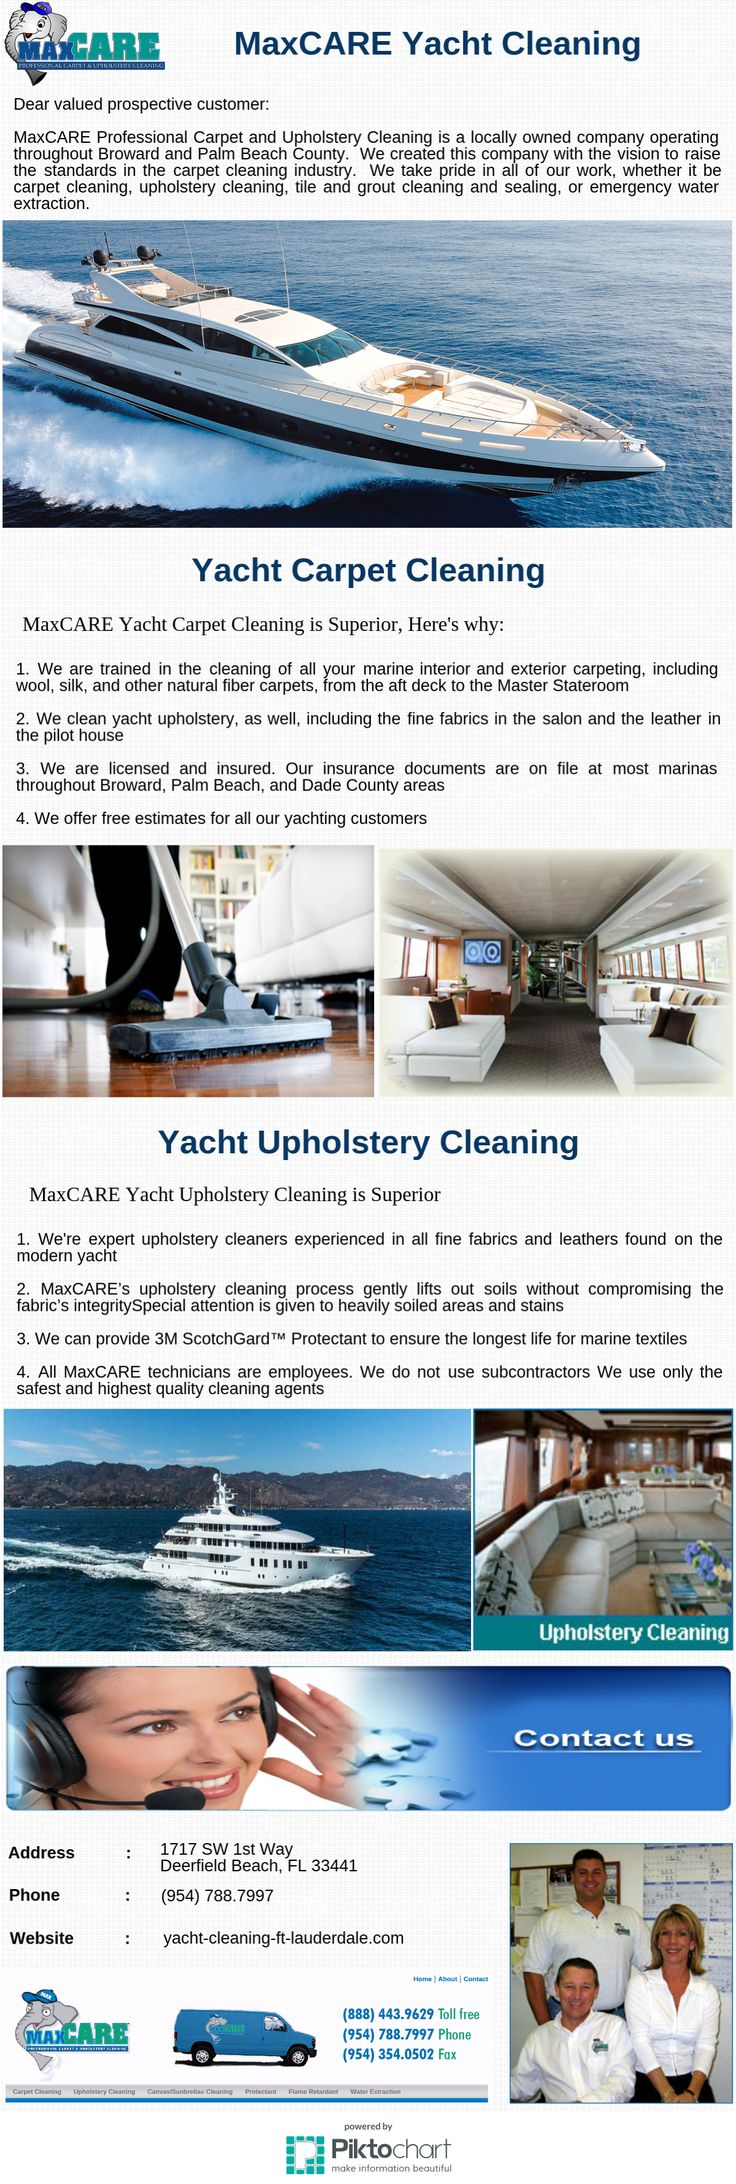 Maxcare professional carpet and upholstery cleaning is a locally owned company operating throughout broward and palm